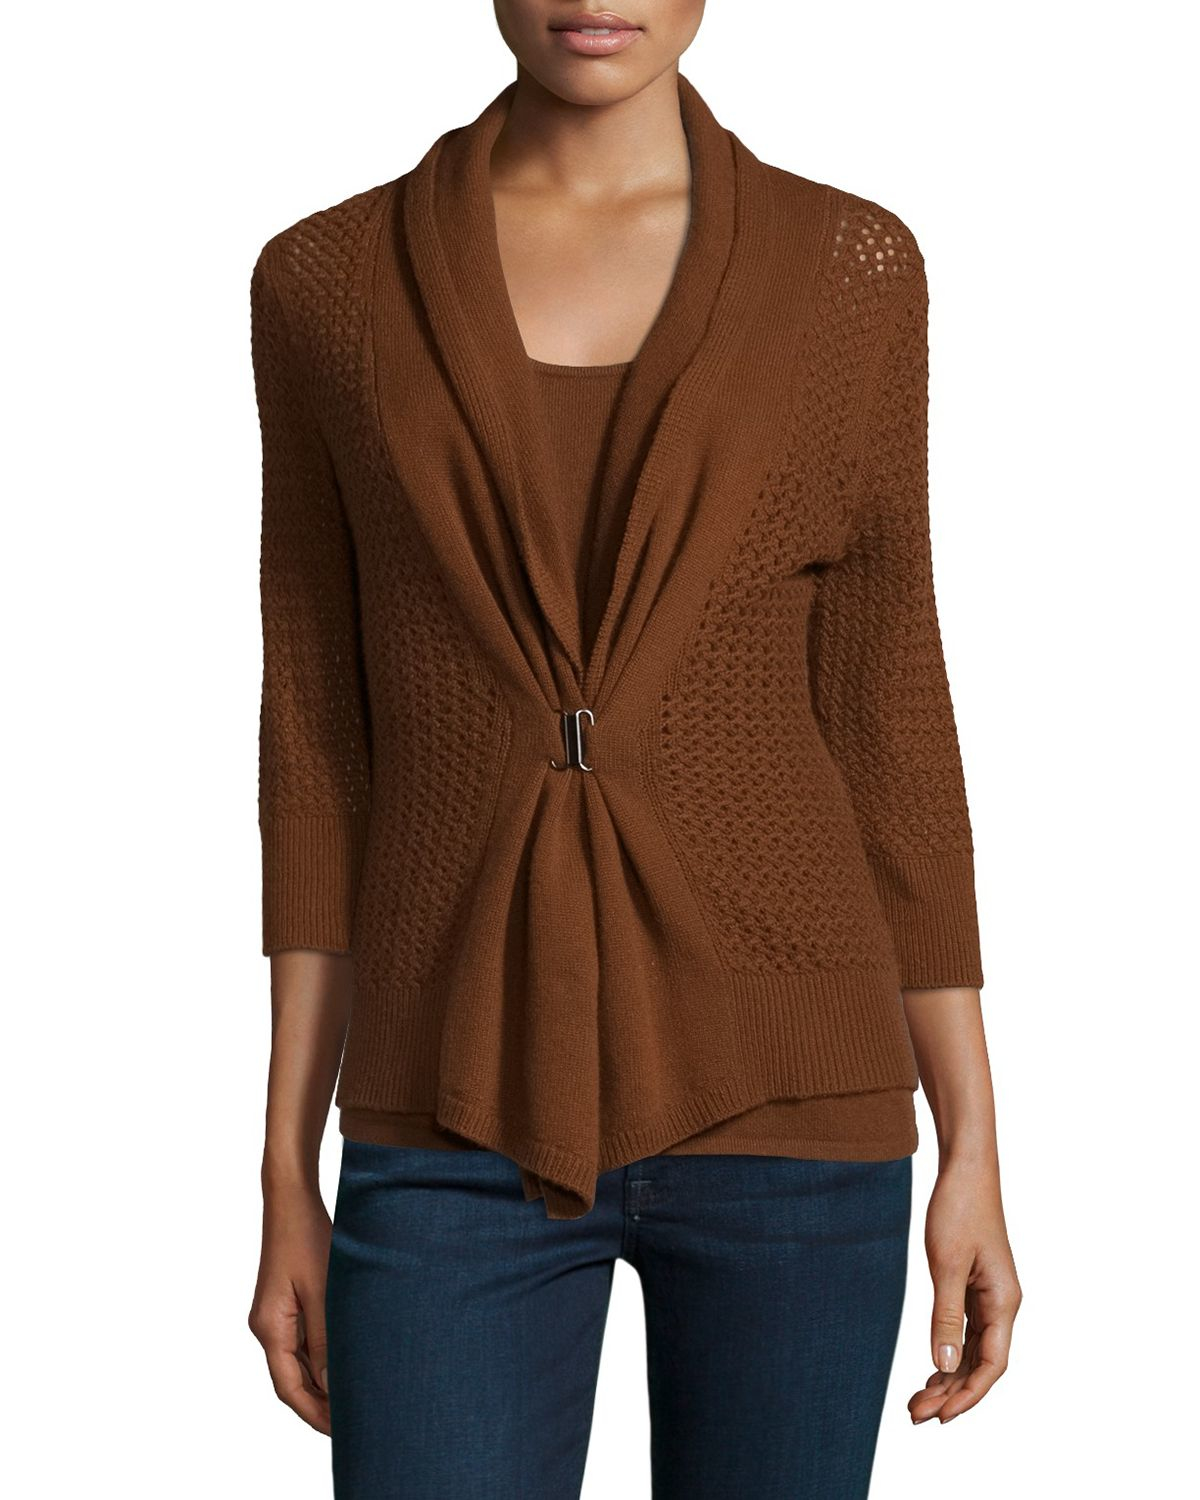 Neiman marcus Open-weave Buckle-front Cashmere Cardigan in Brown ...